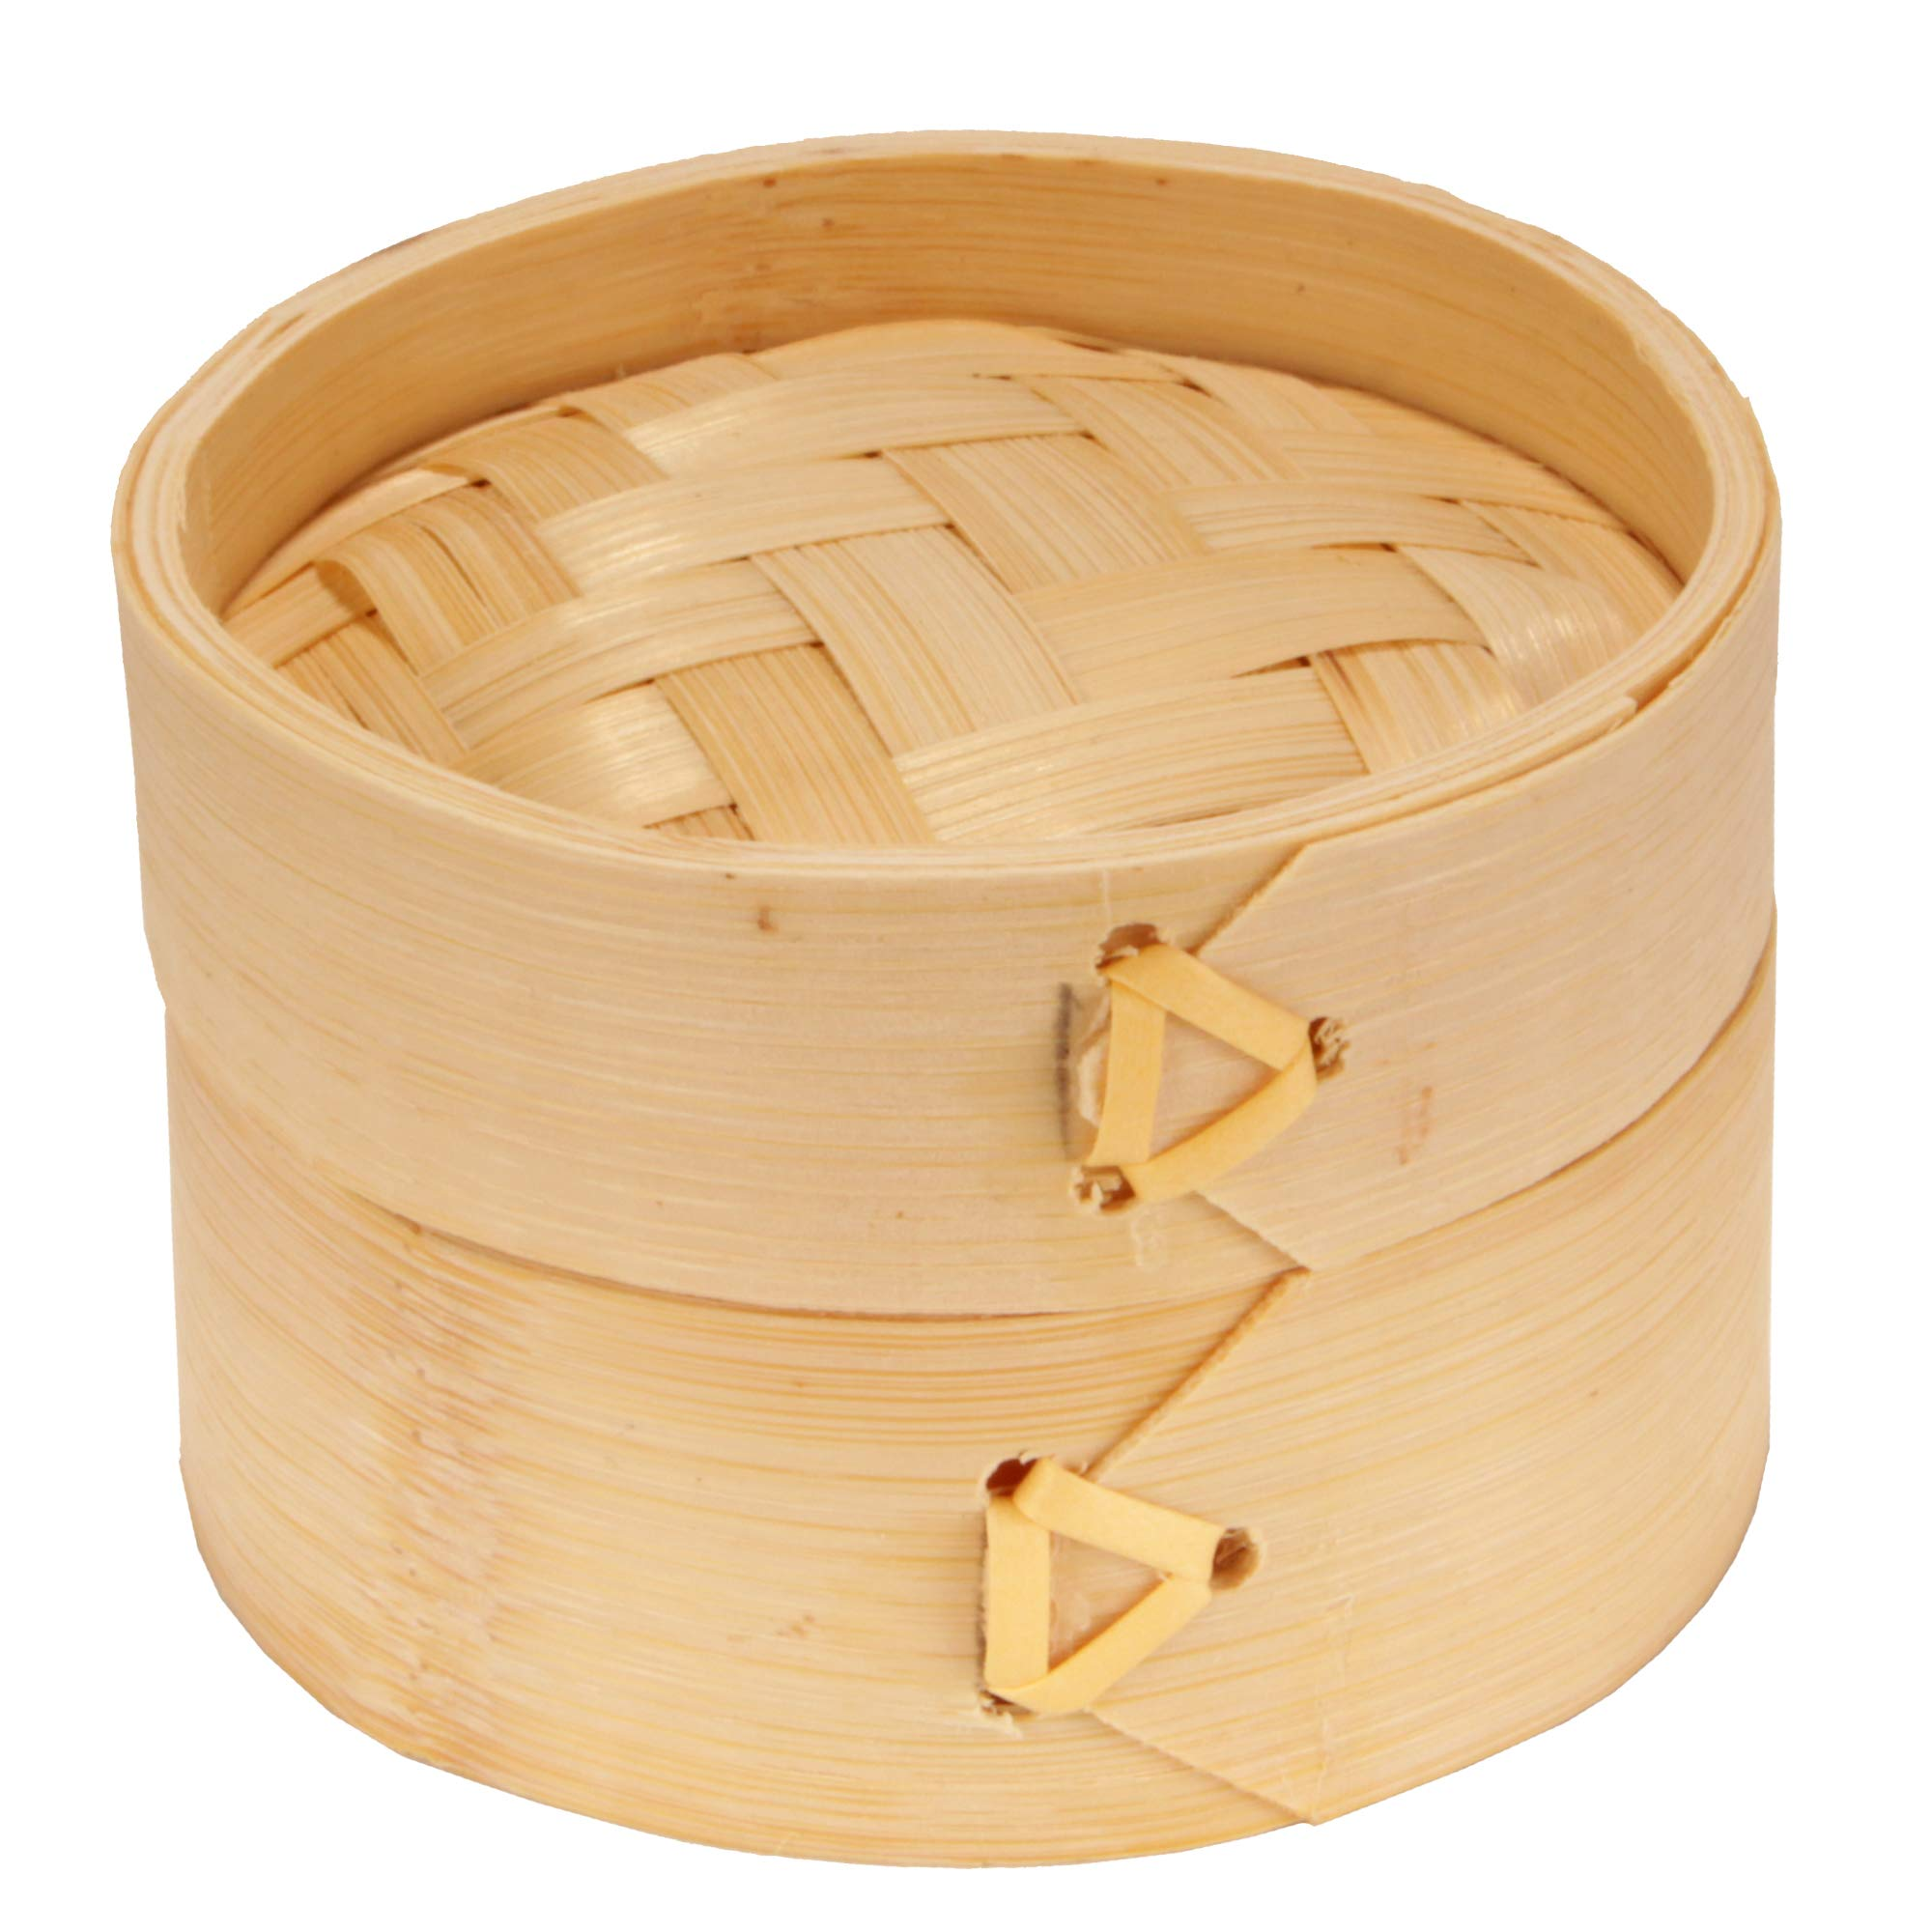 BambooMN 3 Inch Mini Bamboo Dim Sum Dumpling Steamer Basket for Dessert Party Favors Wedding Birthday Home Decorations Supplies, 100 Pieces by BambooMN (Image #3)